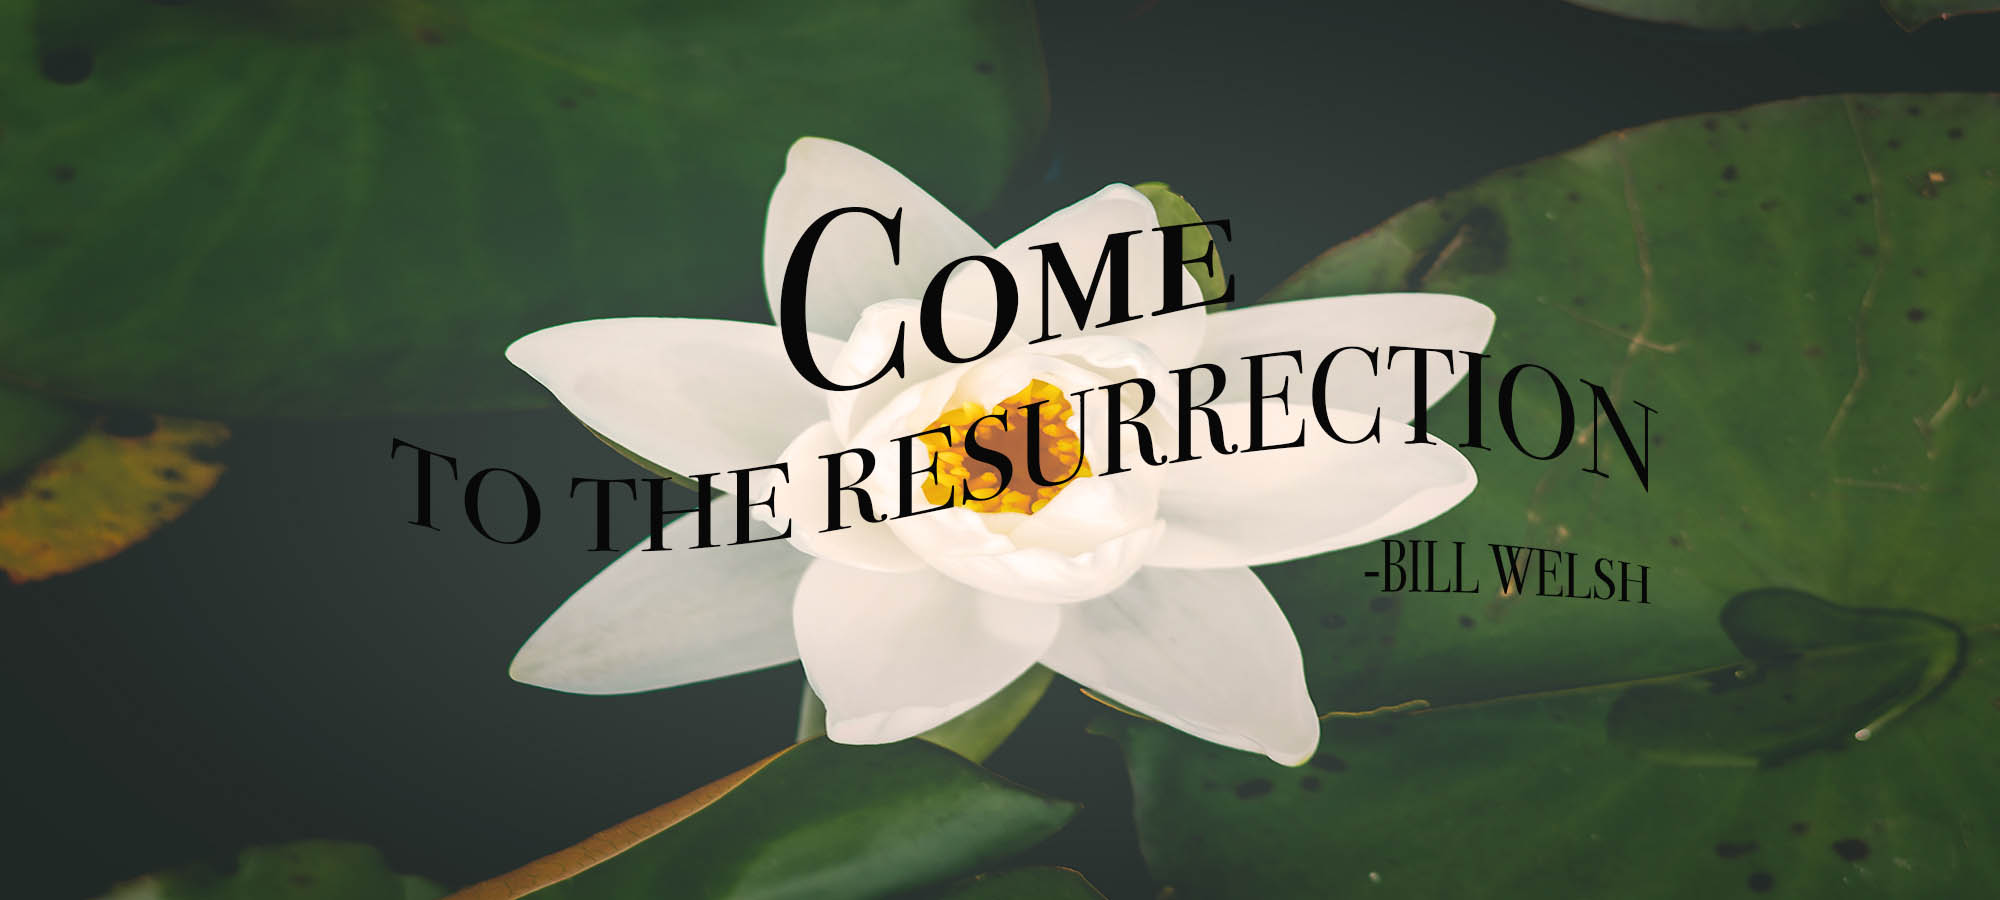 Come to the Resurrection